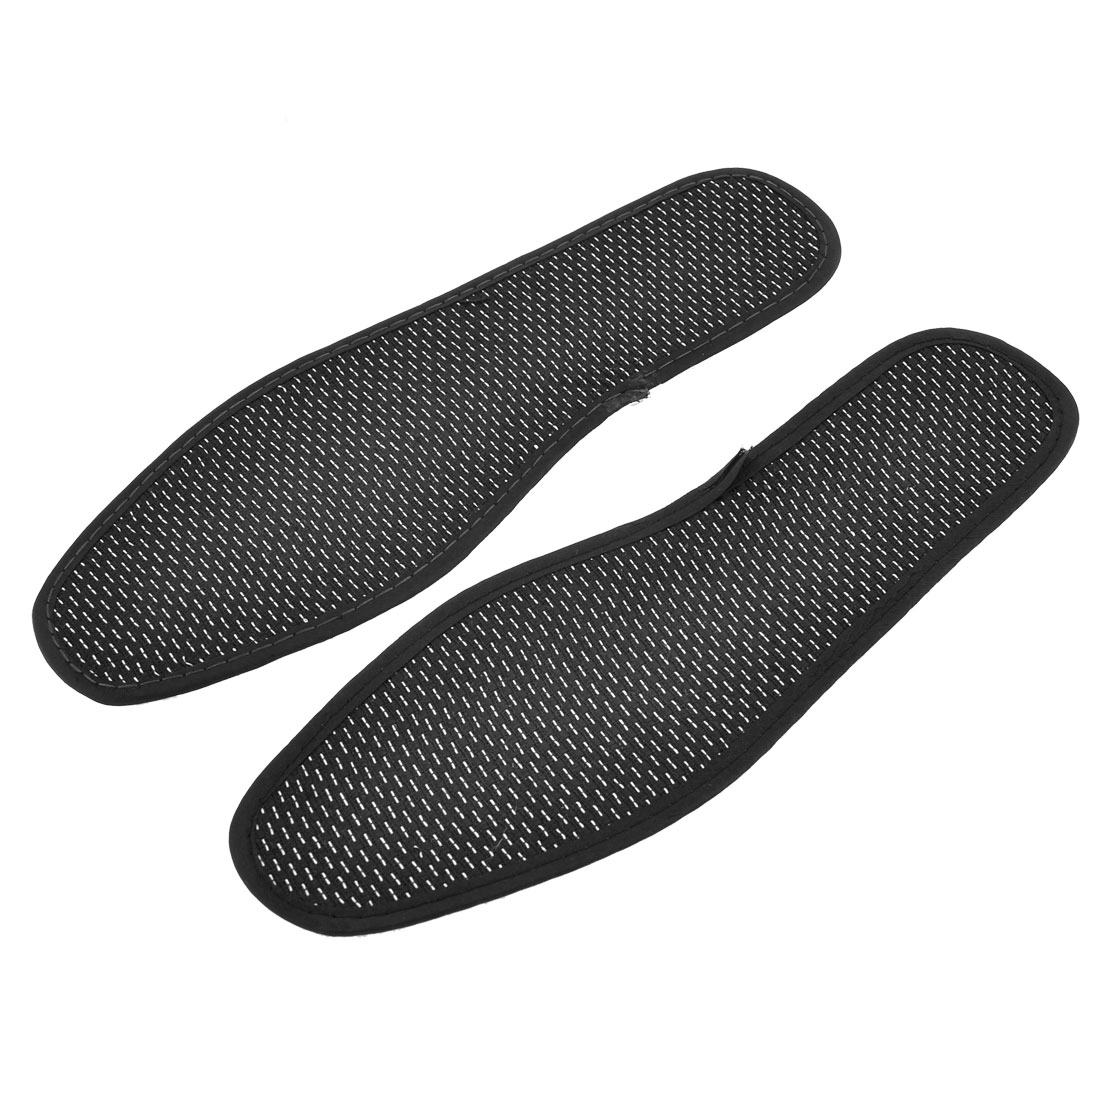 Pair Textured Nonslip Shoe Pads Insoles Black White UK Size 7.5 for Men